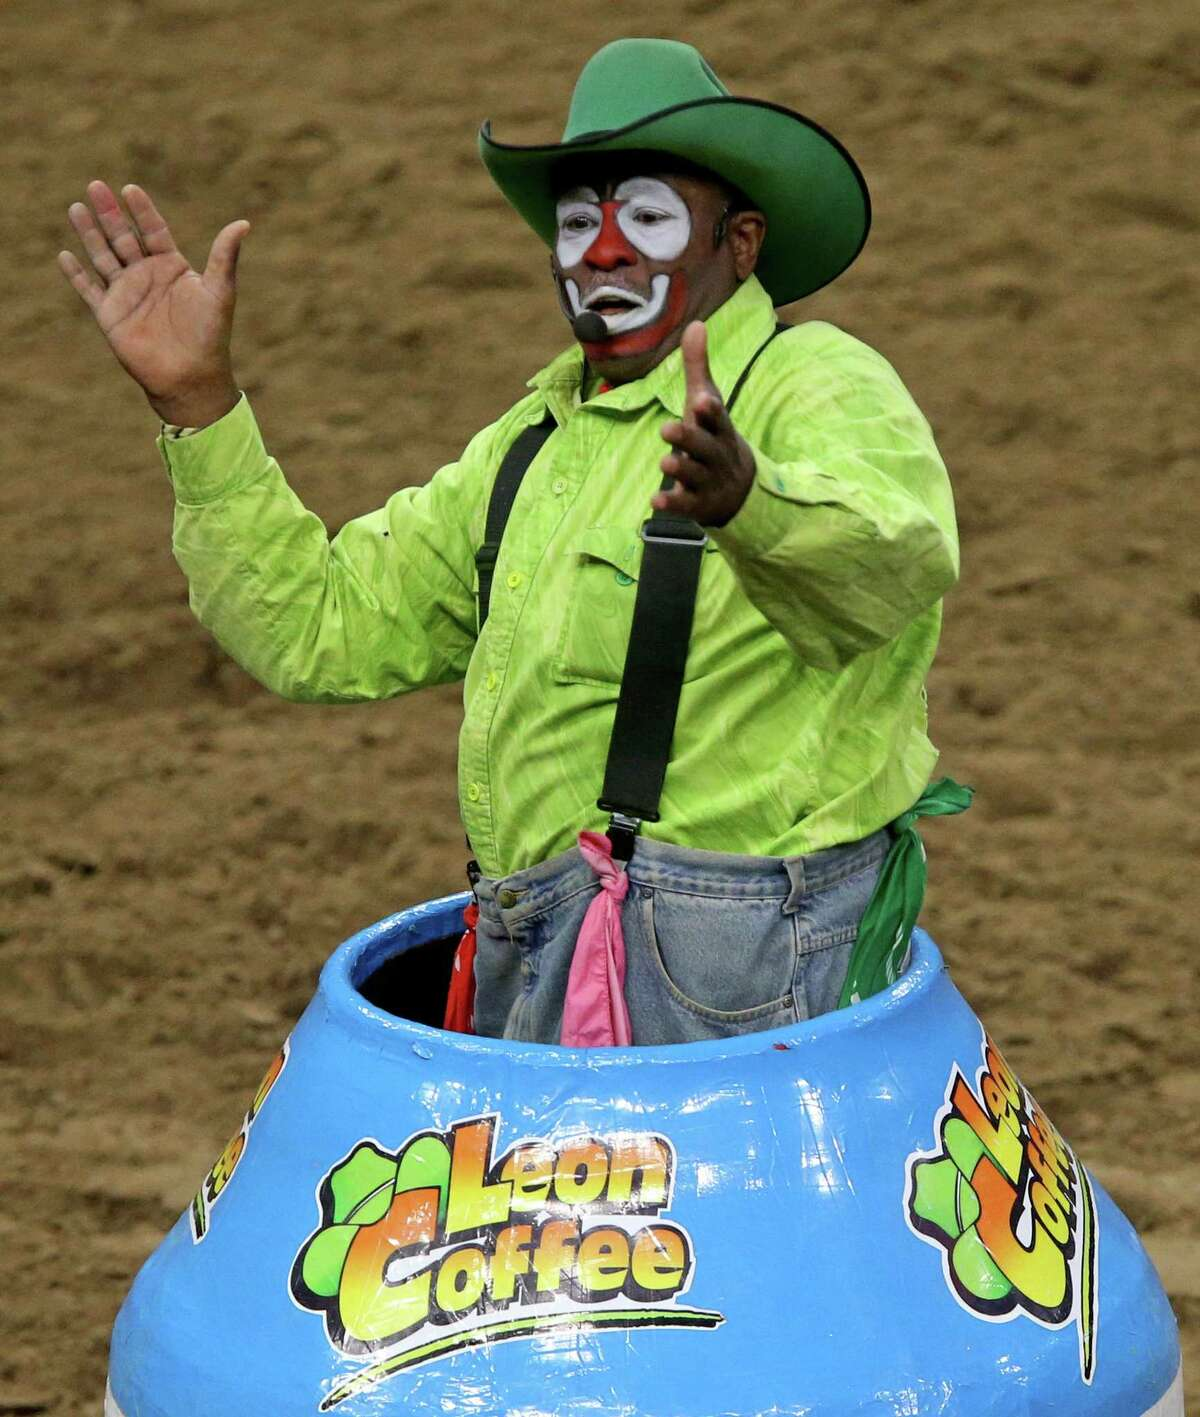 Barrelman Leon Coffee performs during the finals of the bull riding event at the San Antonio Stock Show & Rodeo in 2017 at the AT&T Center.